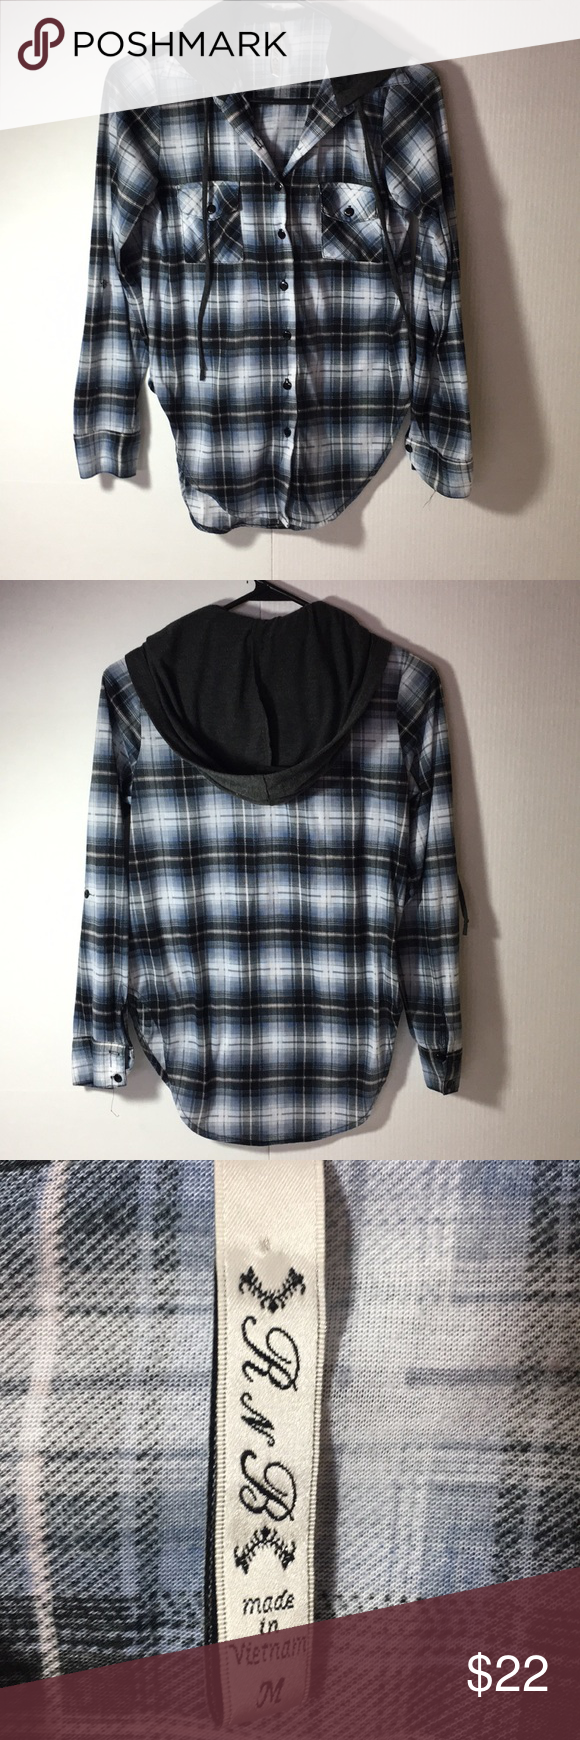 7799e280f095c R & B ( Rich and Beautiful Like You) shirt EUC button down hoodie, 100%  polyester, extremely lightweight plaid shirt. It has 2 front pockets and  would look ...